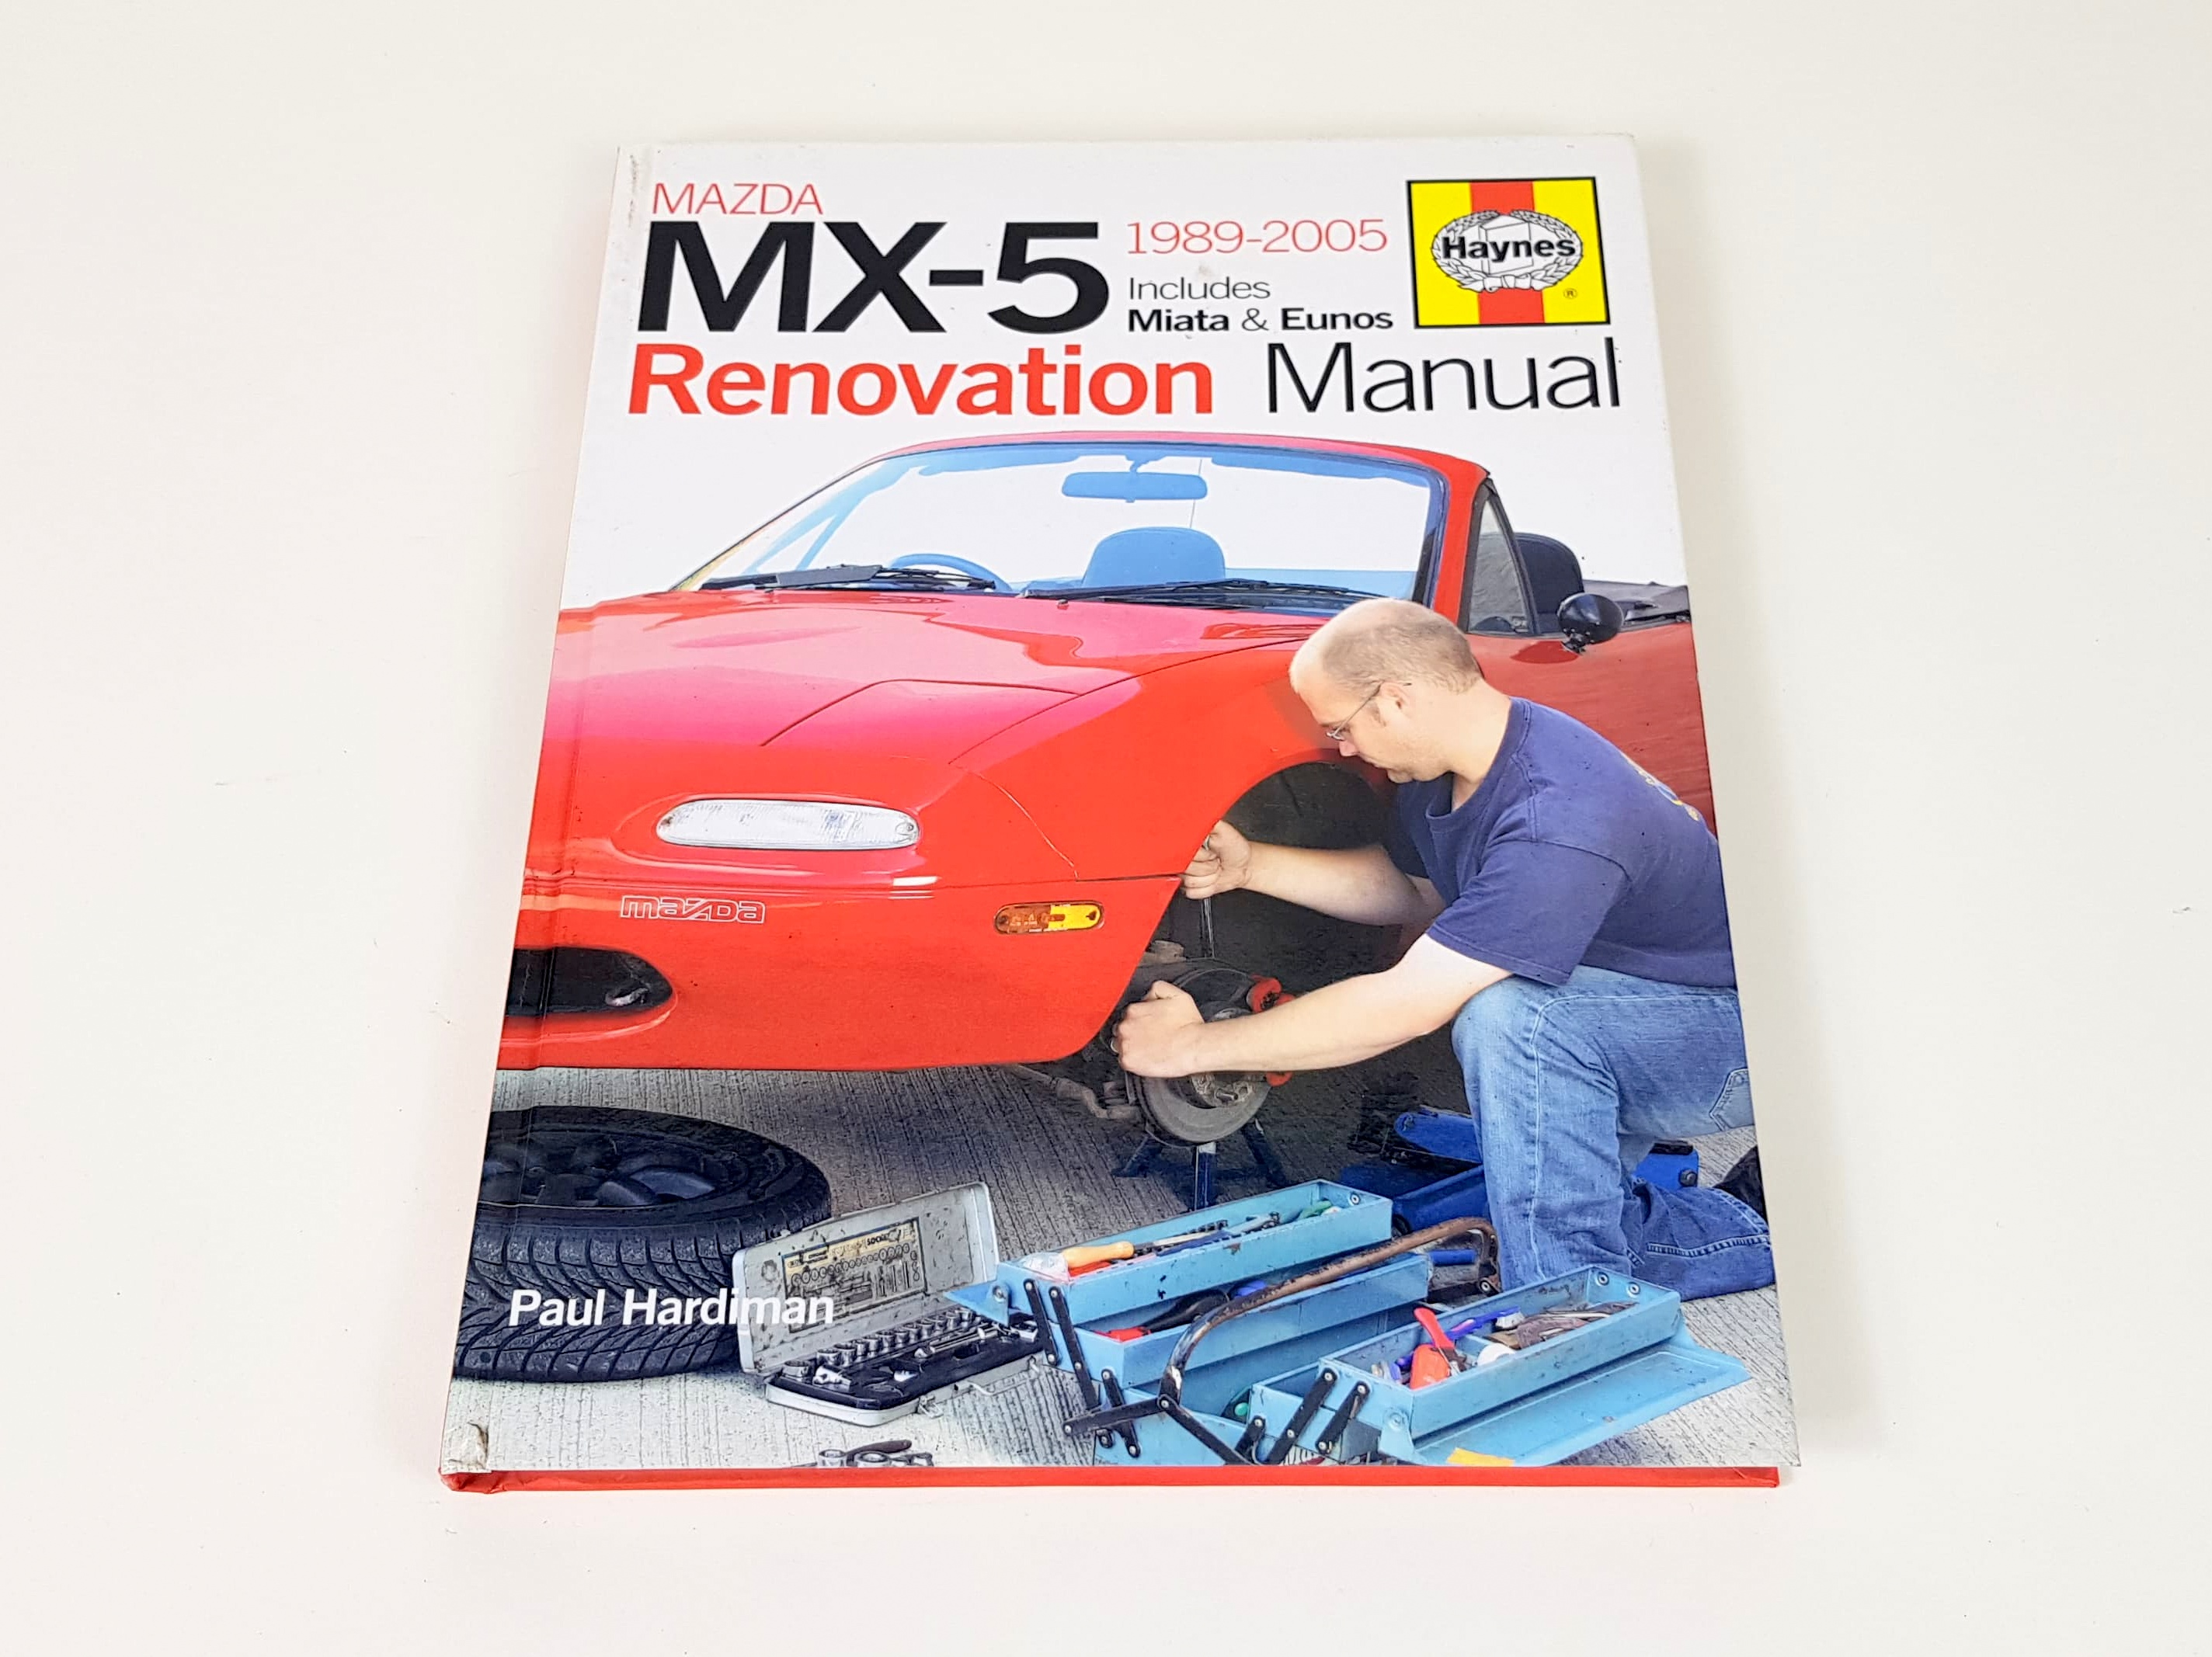 Mazda MX5 Haynes Renovation Manual